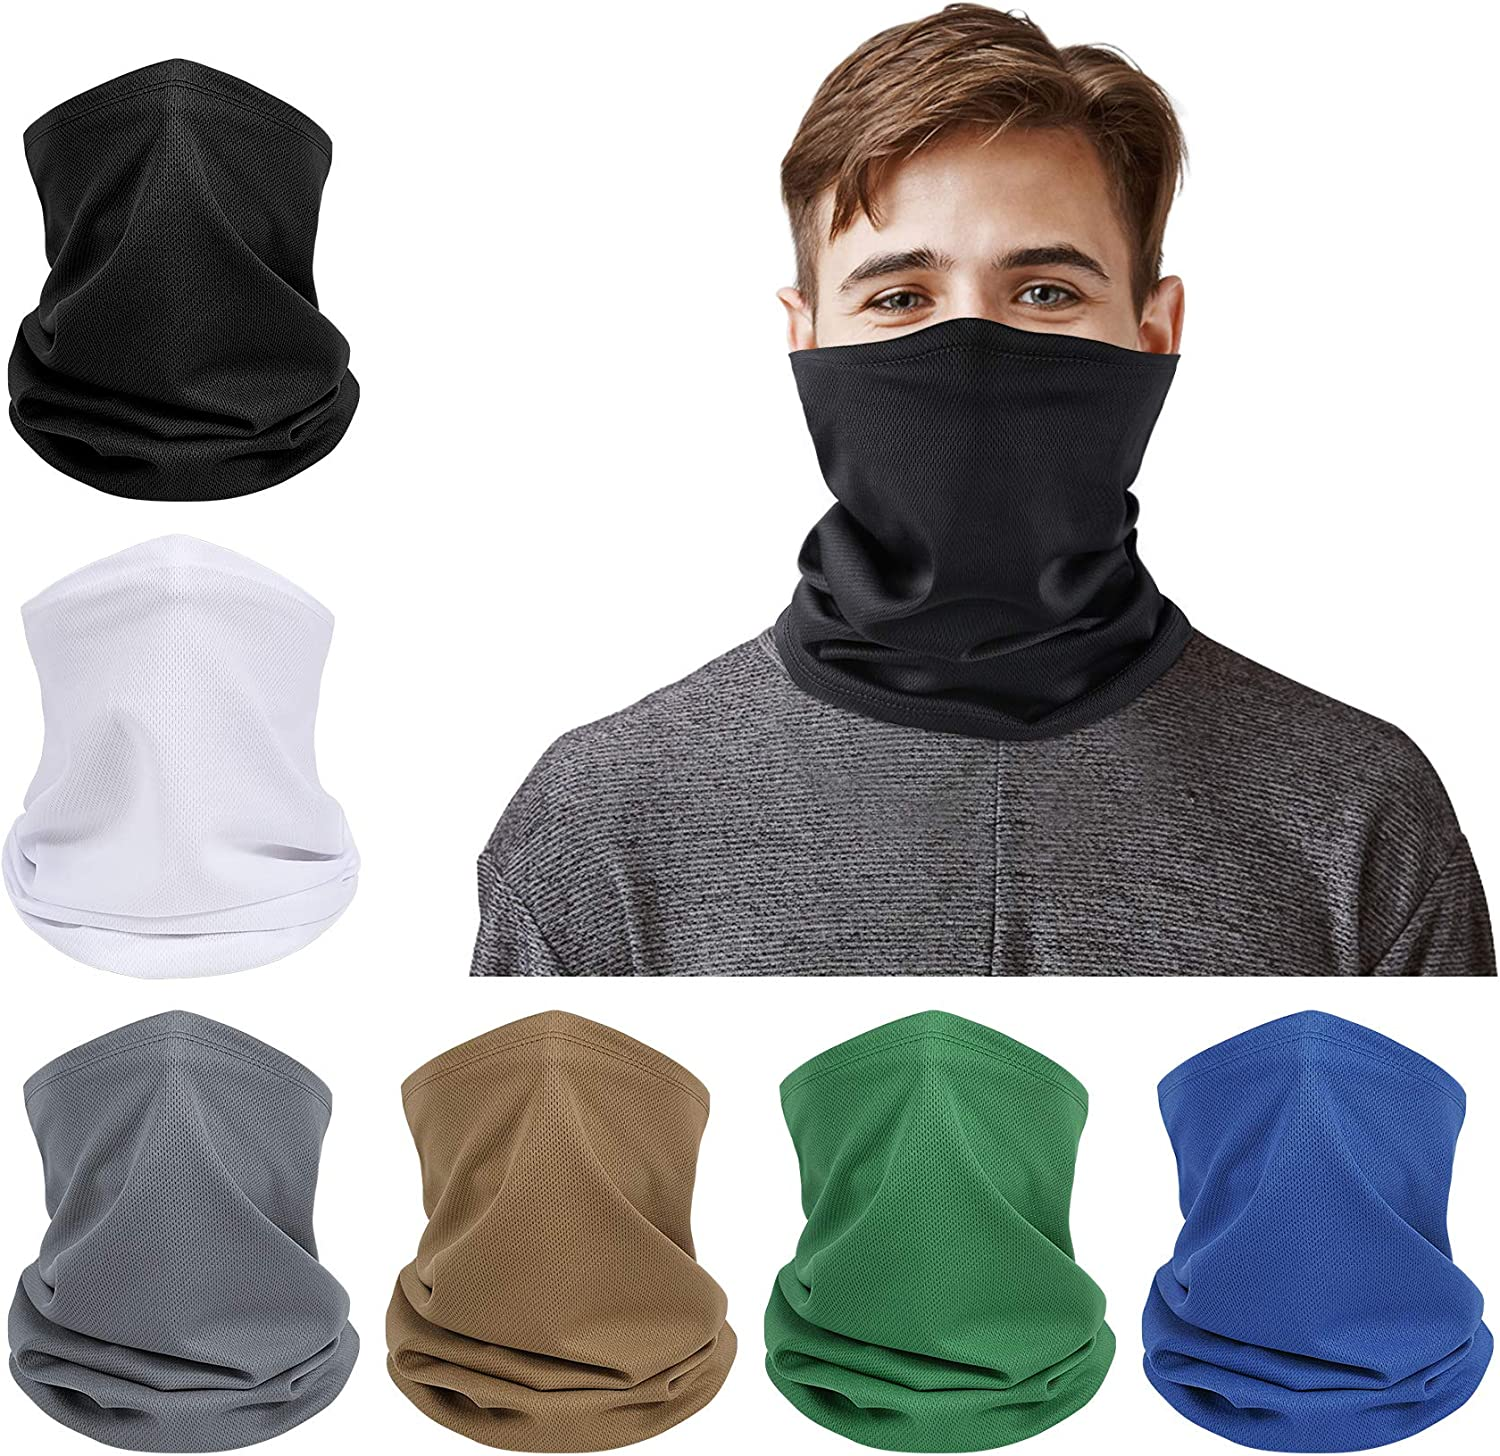 Full Face Mask Scarf Balaclava Motorcycle Cycling Neck Cover Sun UV Protection